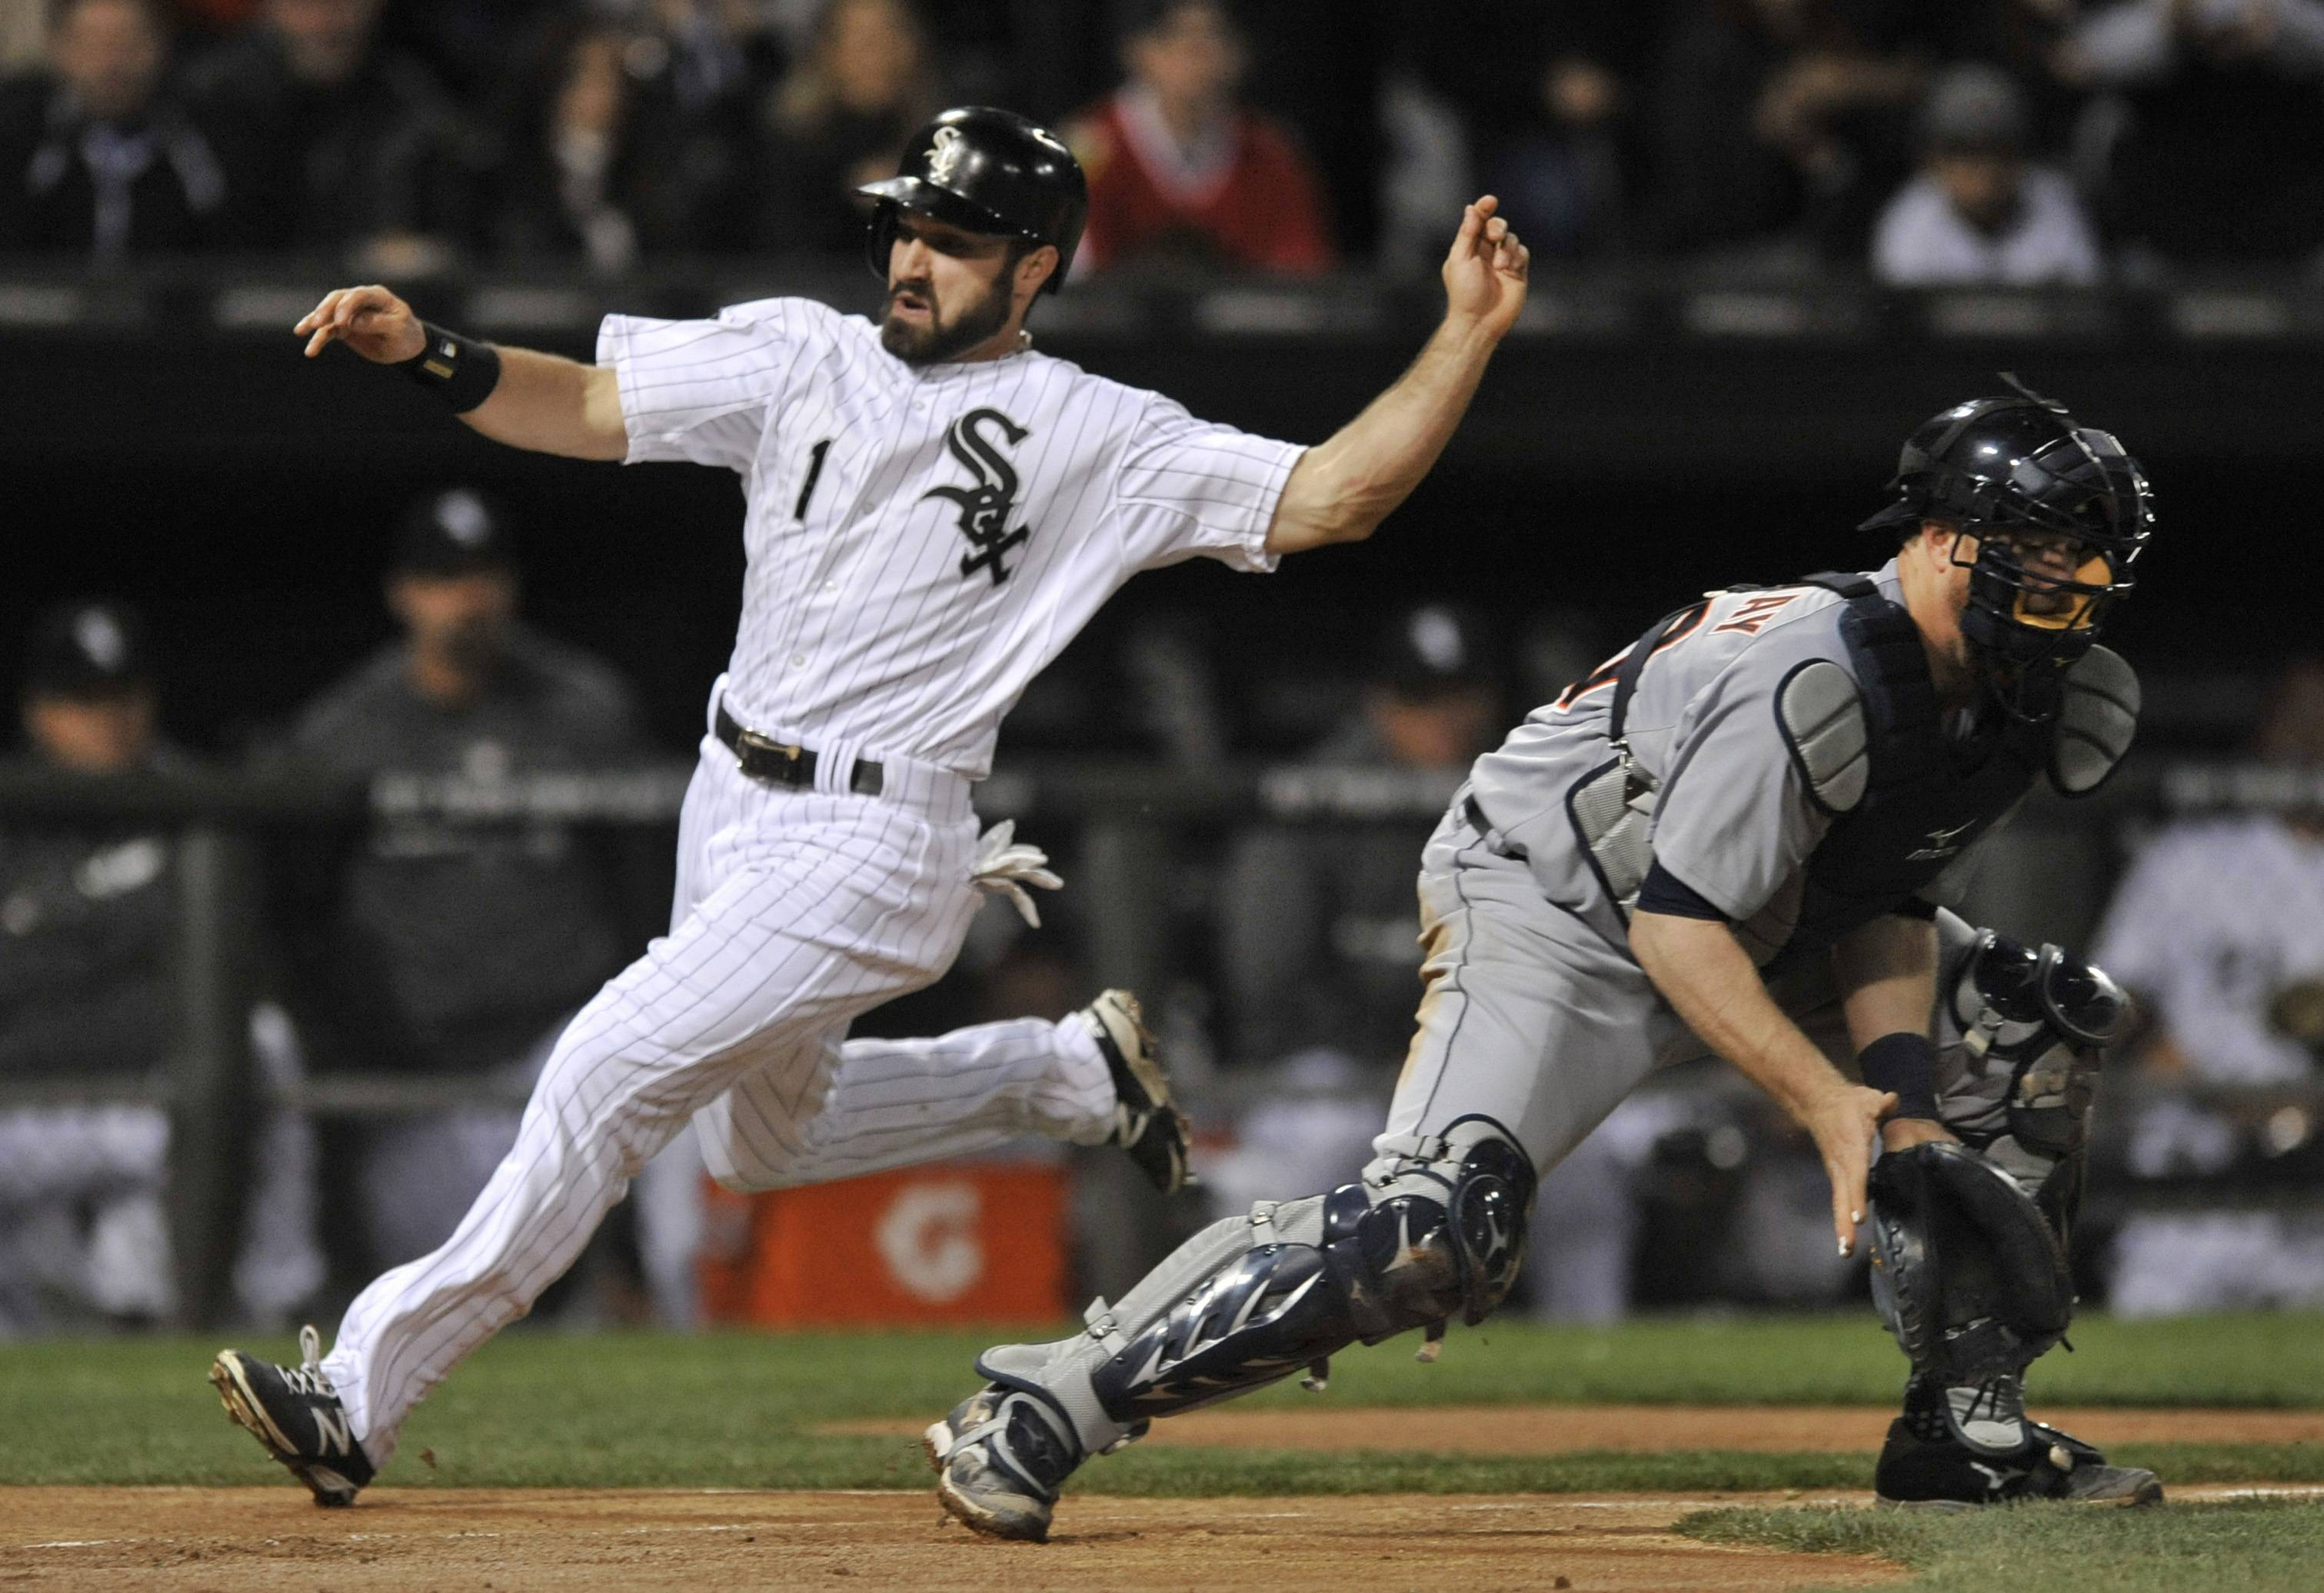 Chicago White Sox's Adam Eaton (1), crosses home plate safely as Detroit Tigers catcher Bryan Holaday waits for the throw during the third inning of a baseball game Tuesday in Chicago.